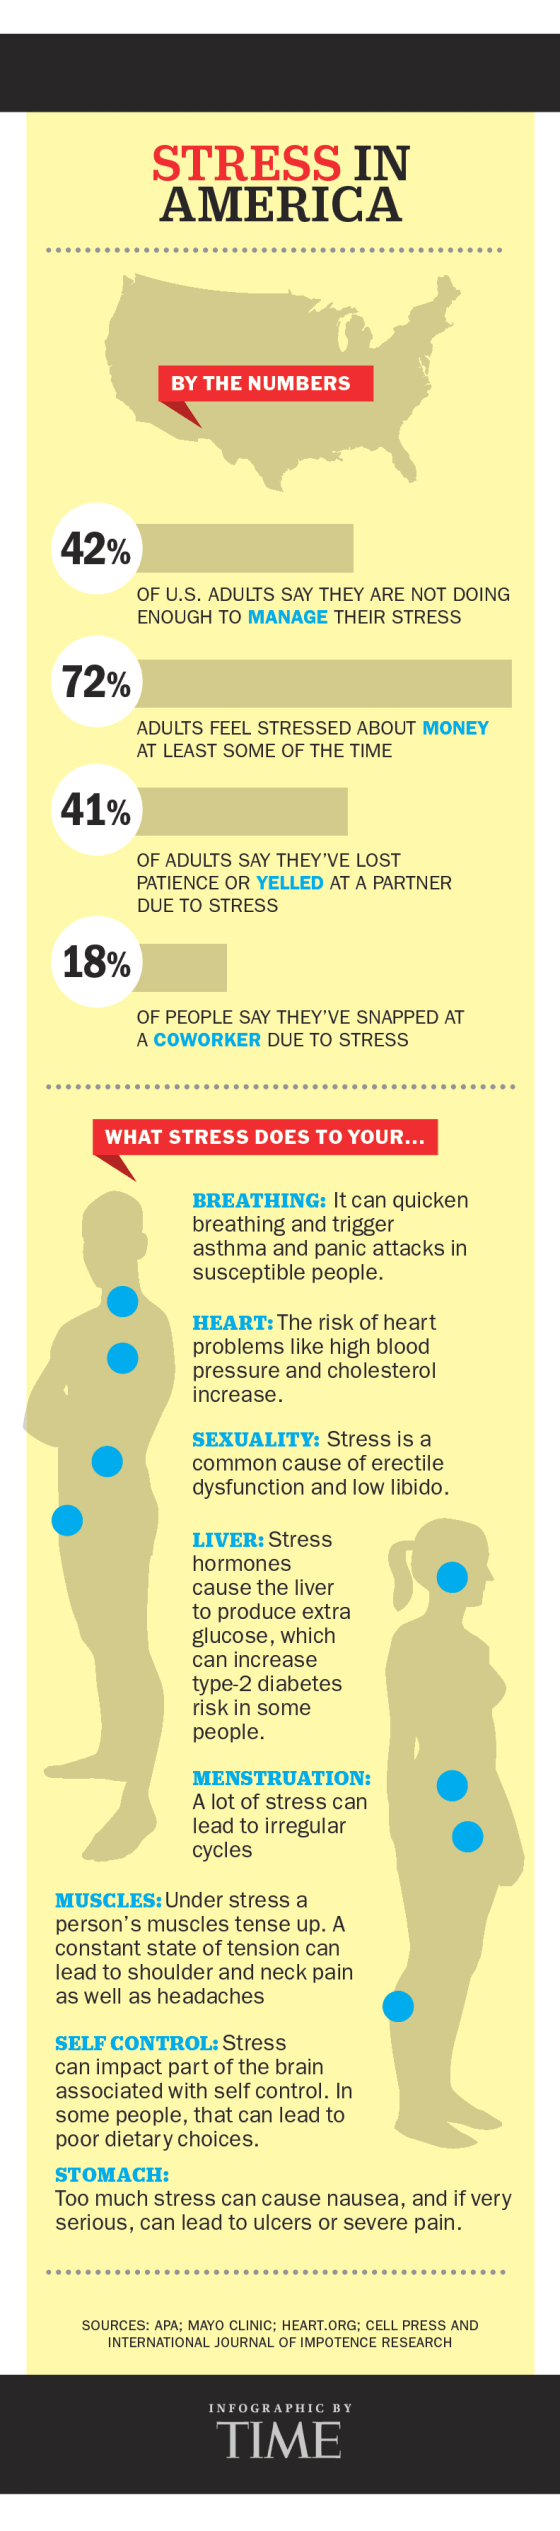 stress and its effects on health Financial stress can have major effects on your health stress, in general, can cause heart attacks, strokes, and many other serious health issues regardless of the source.